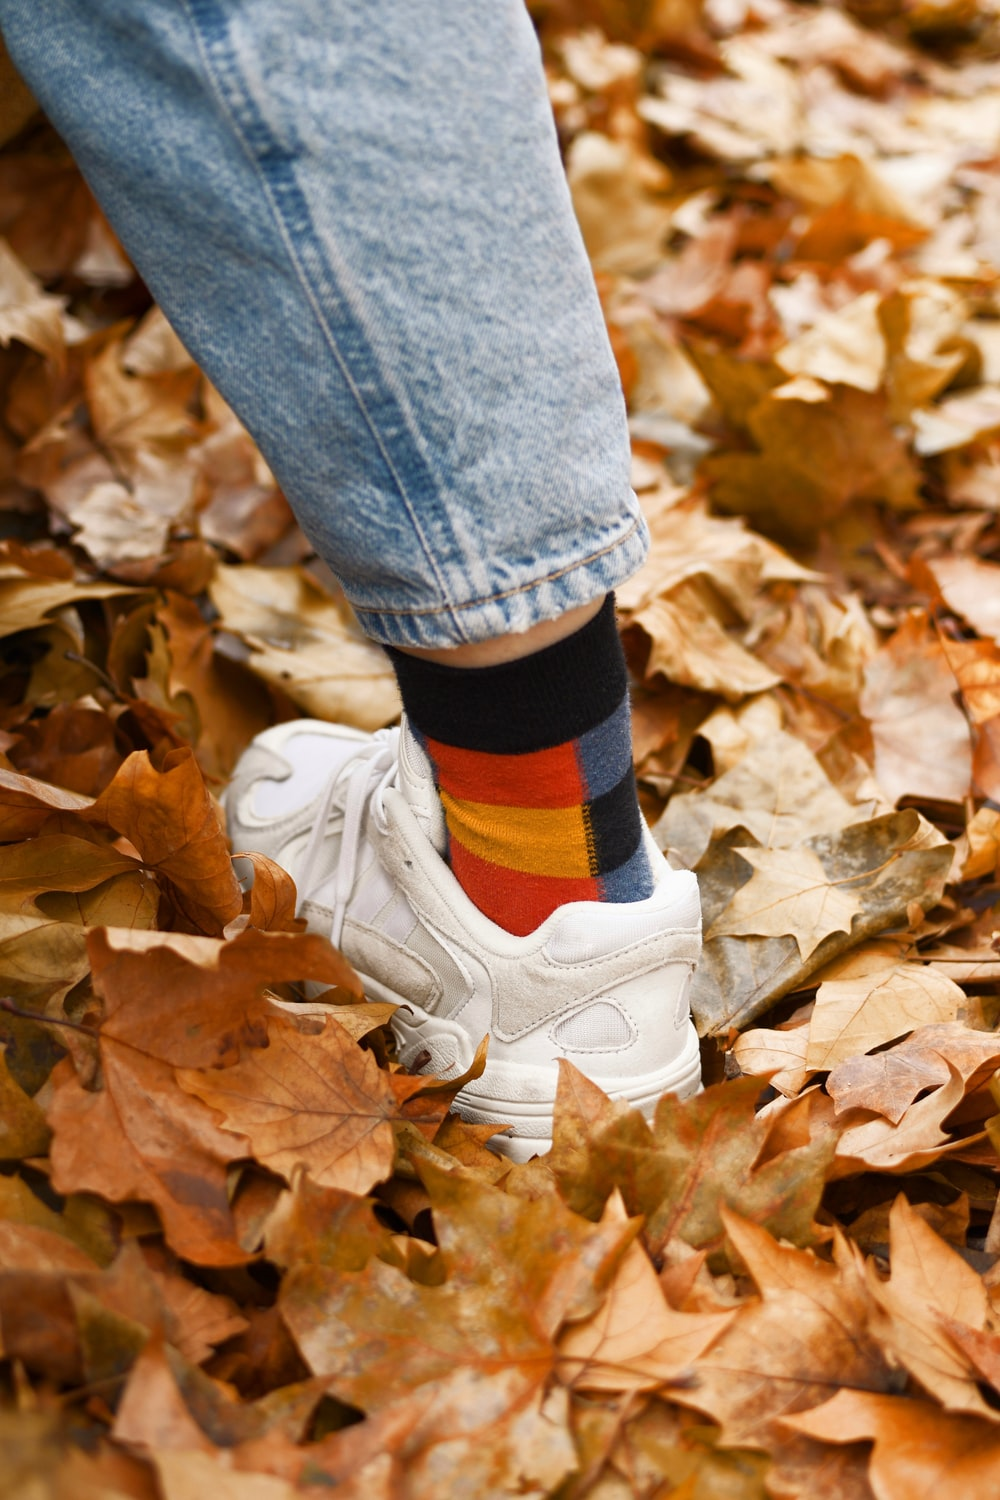 person in blue denim jeans and white nike sneakers standing on dried leaves